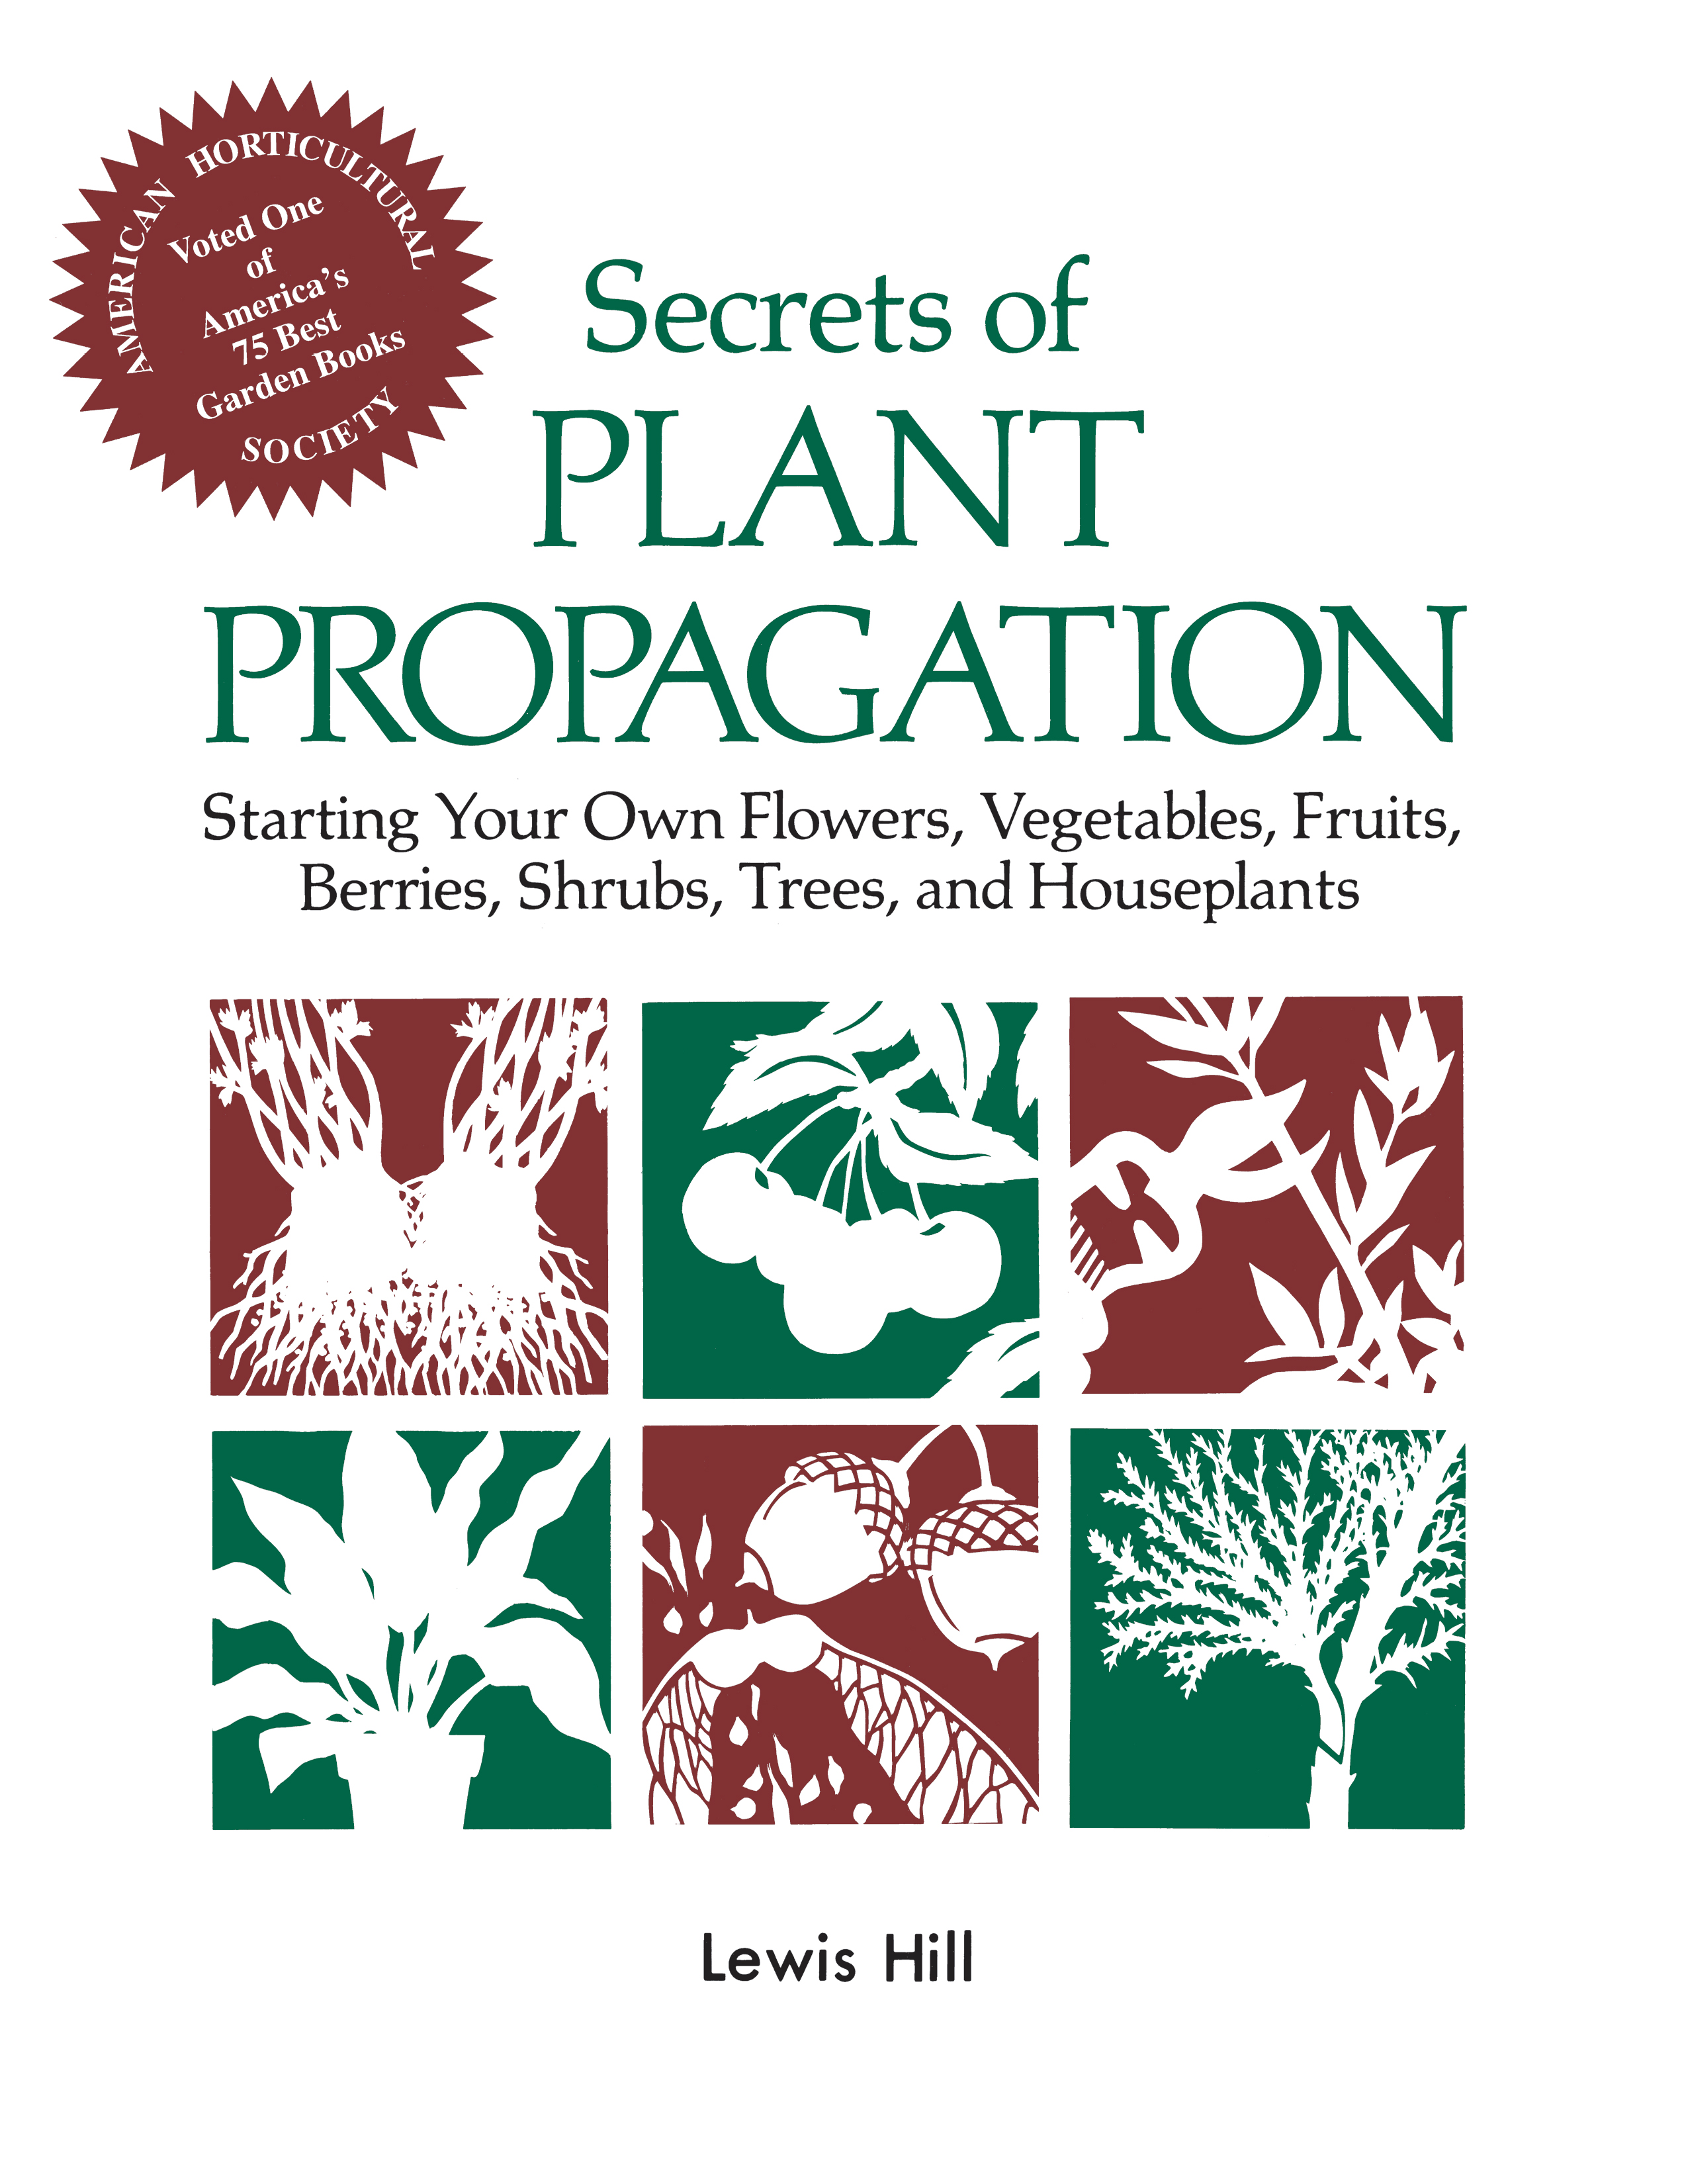 Secrets of Plant Propagation Starting Your Own Flowers, Vegetables, Fruits, Berries, Shrubs, Trees, and Houseplants - Lewis Hill